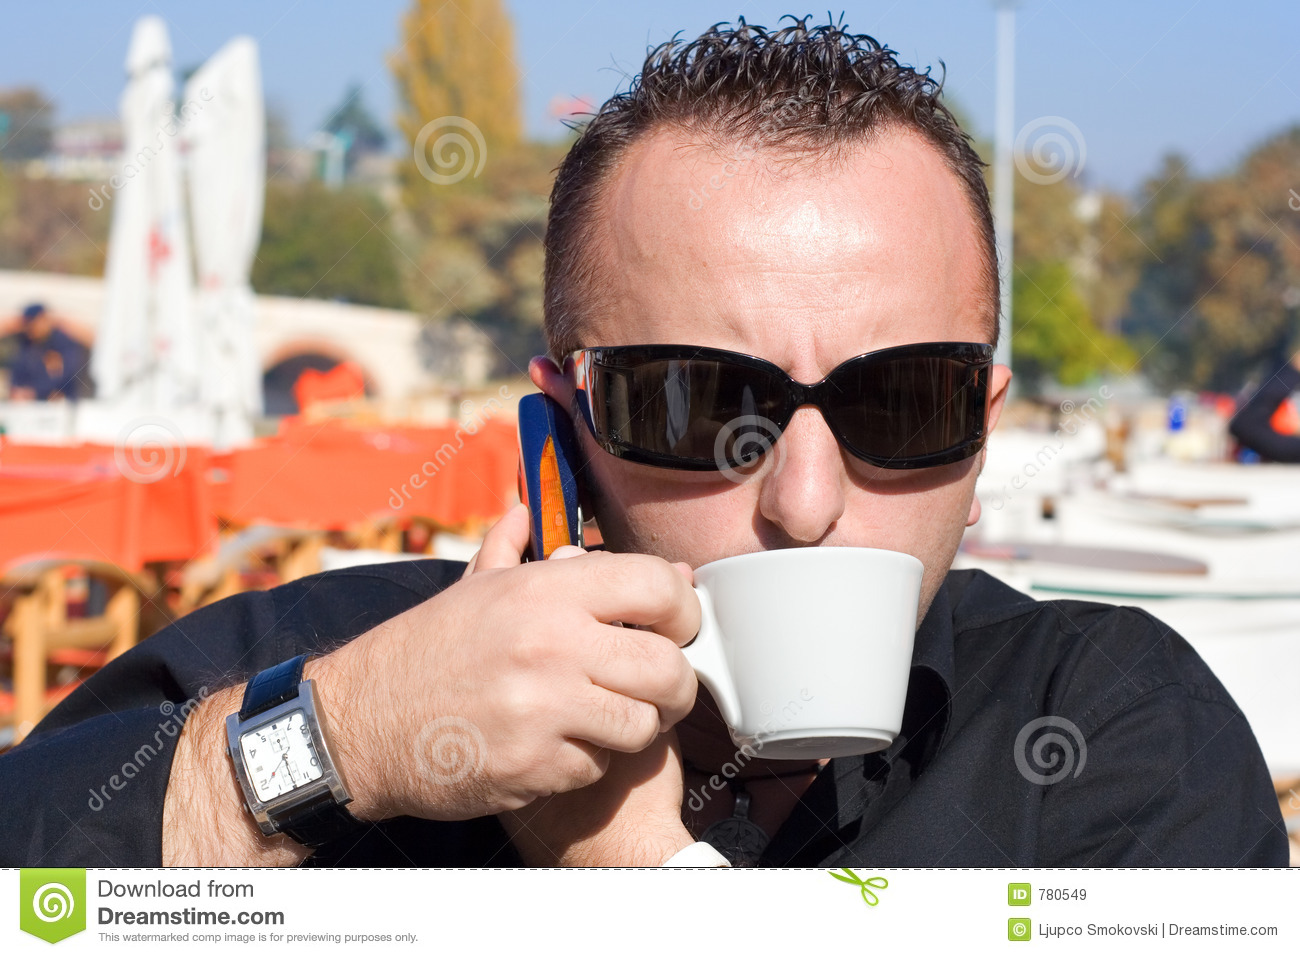 Person having a cup of coffee